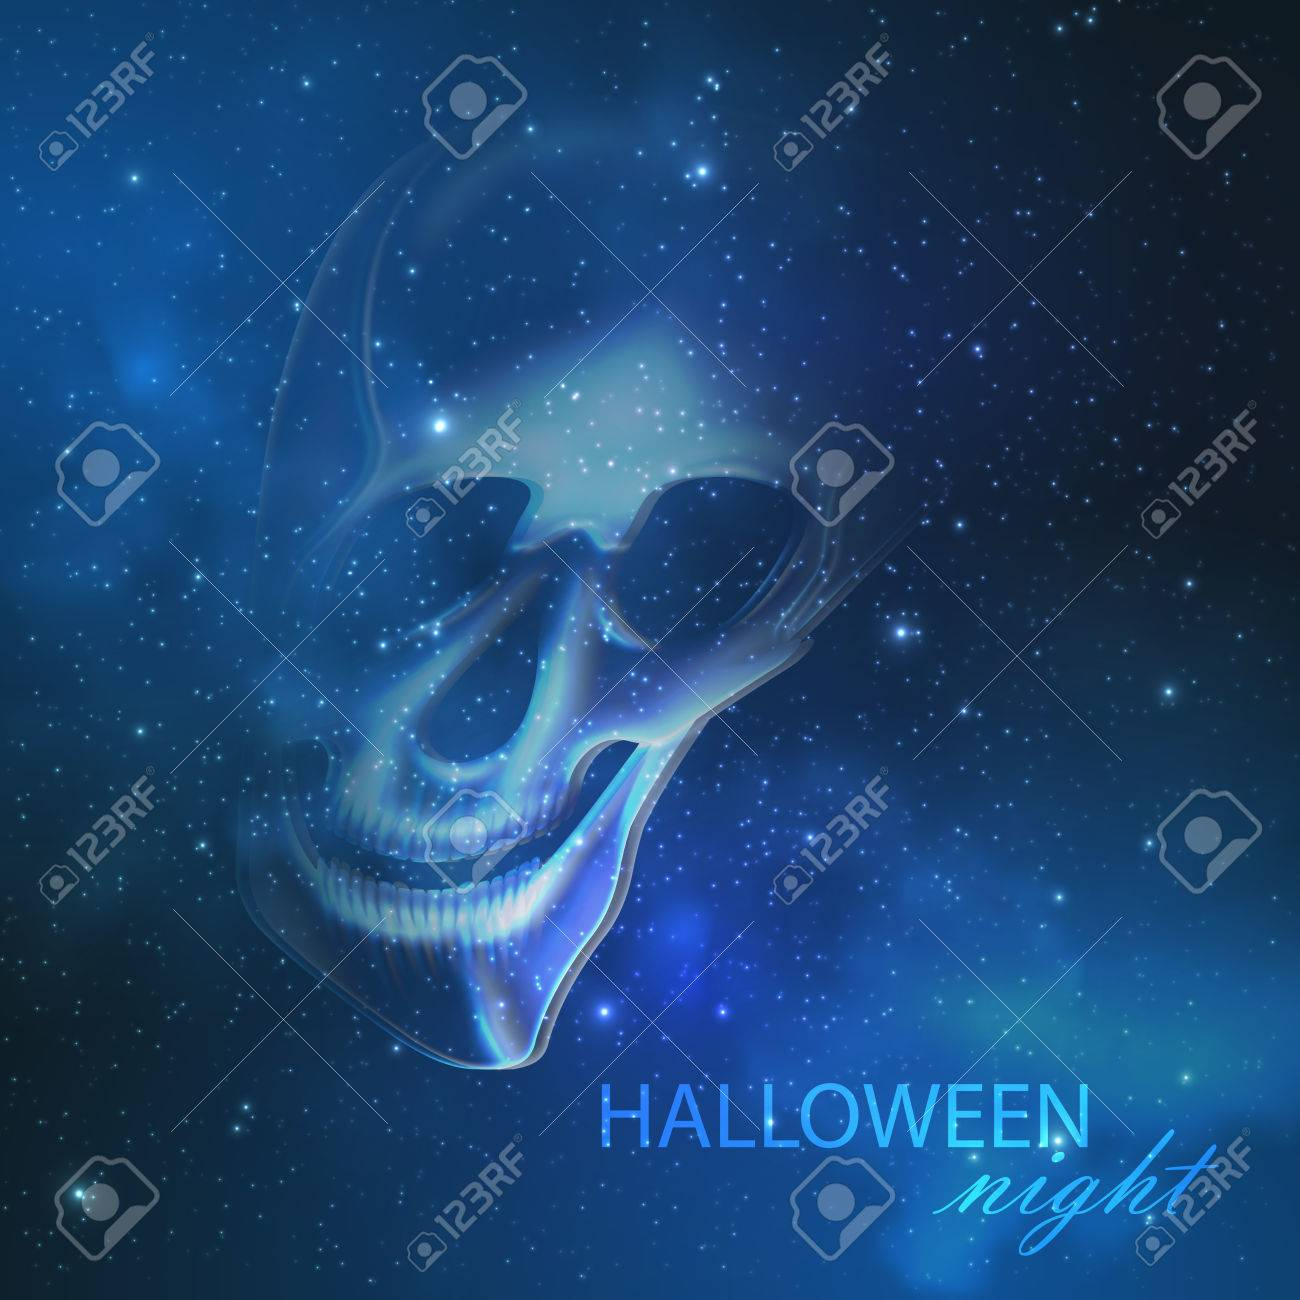 Most Inspiring Wallpaper Night Ghost - 33060535-spooky-vector-illustration-with-an-evil-ghost-skull-on-the-night-starry-sky-background-halloween-wal  2018-66195.jpg